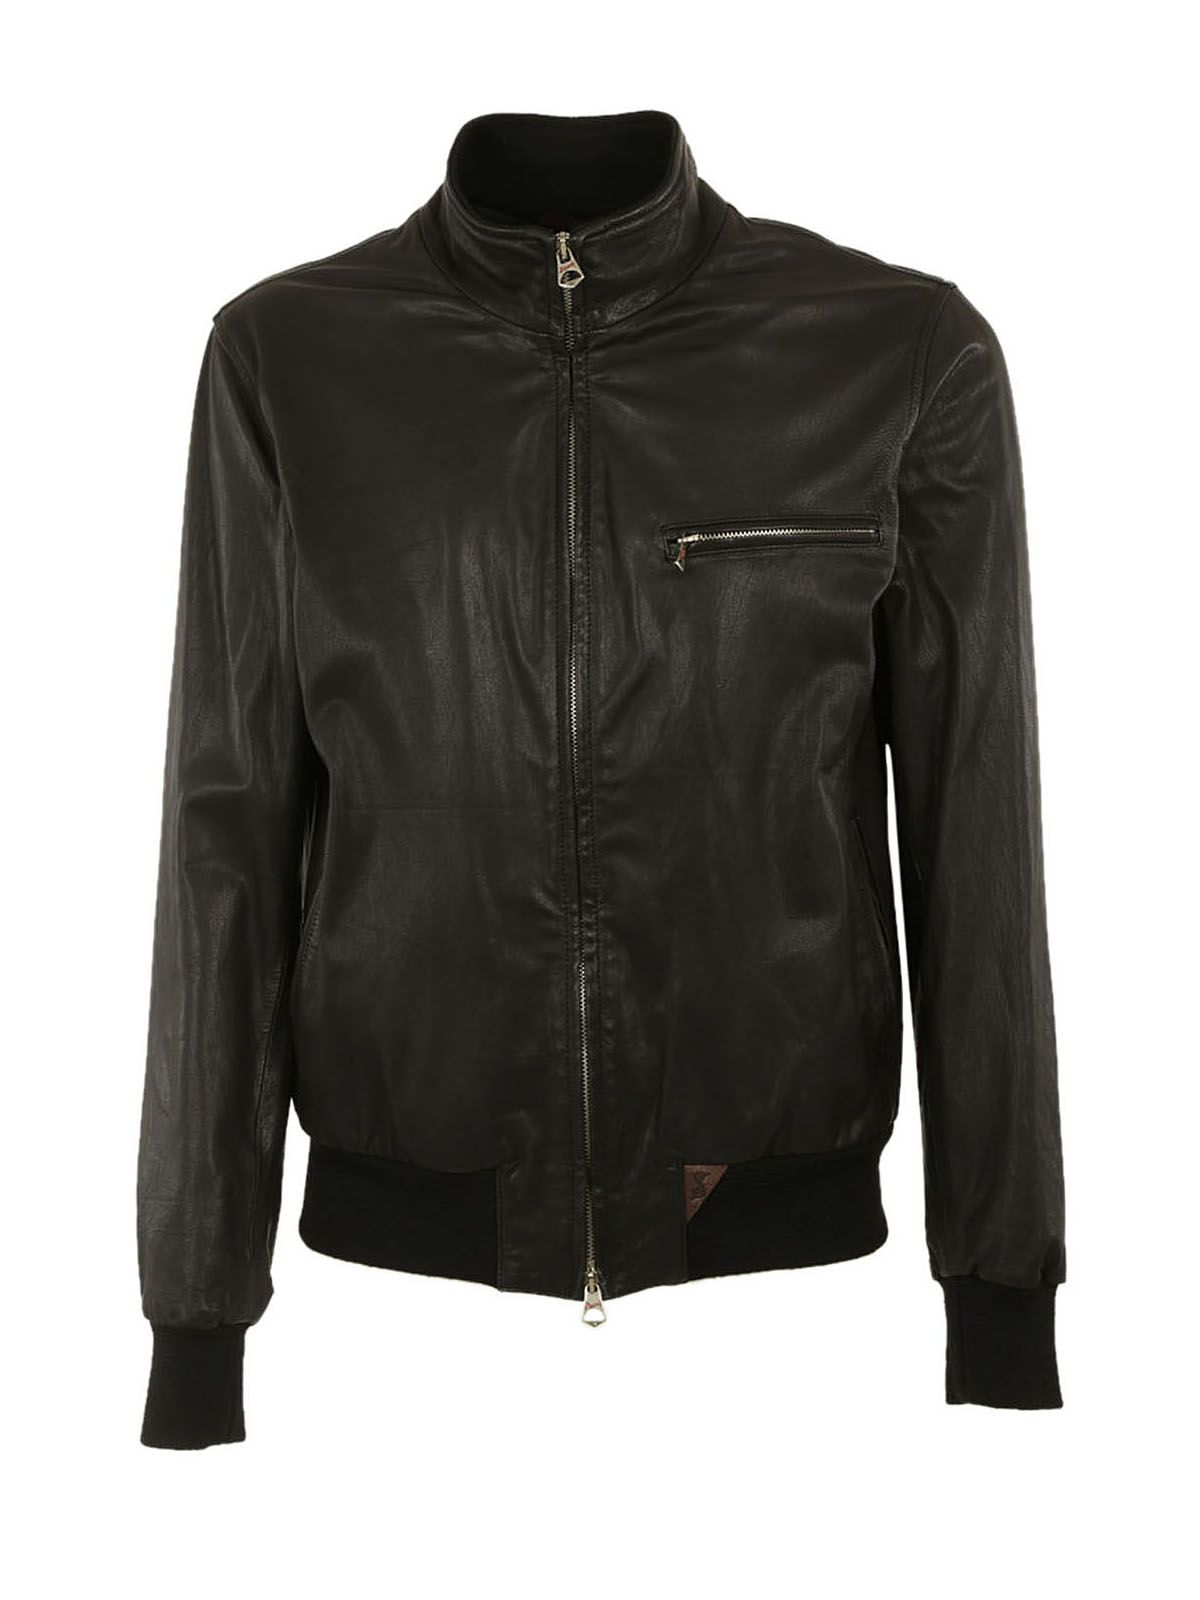 STEWART Chest Pocket Leather Jacket in Black